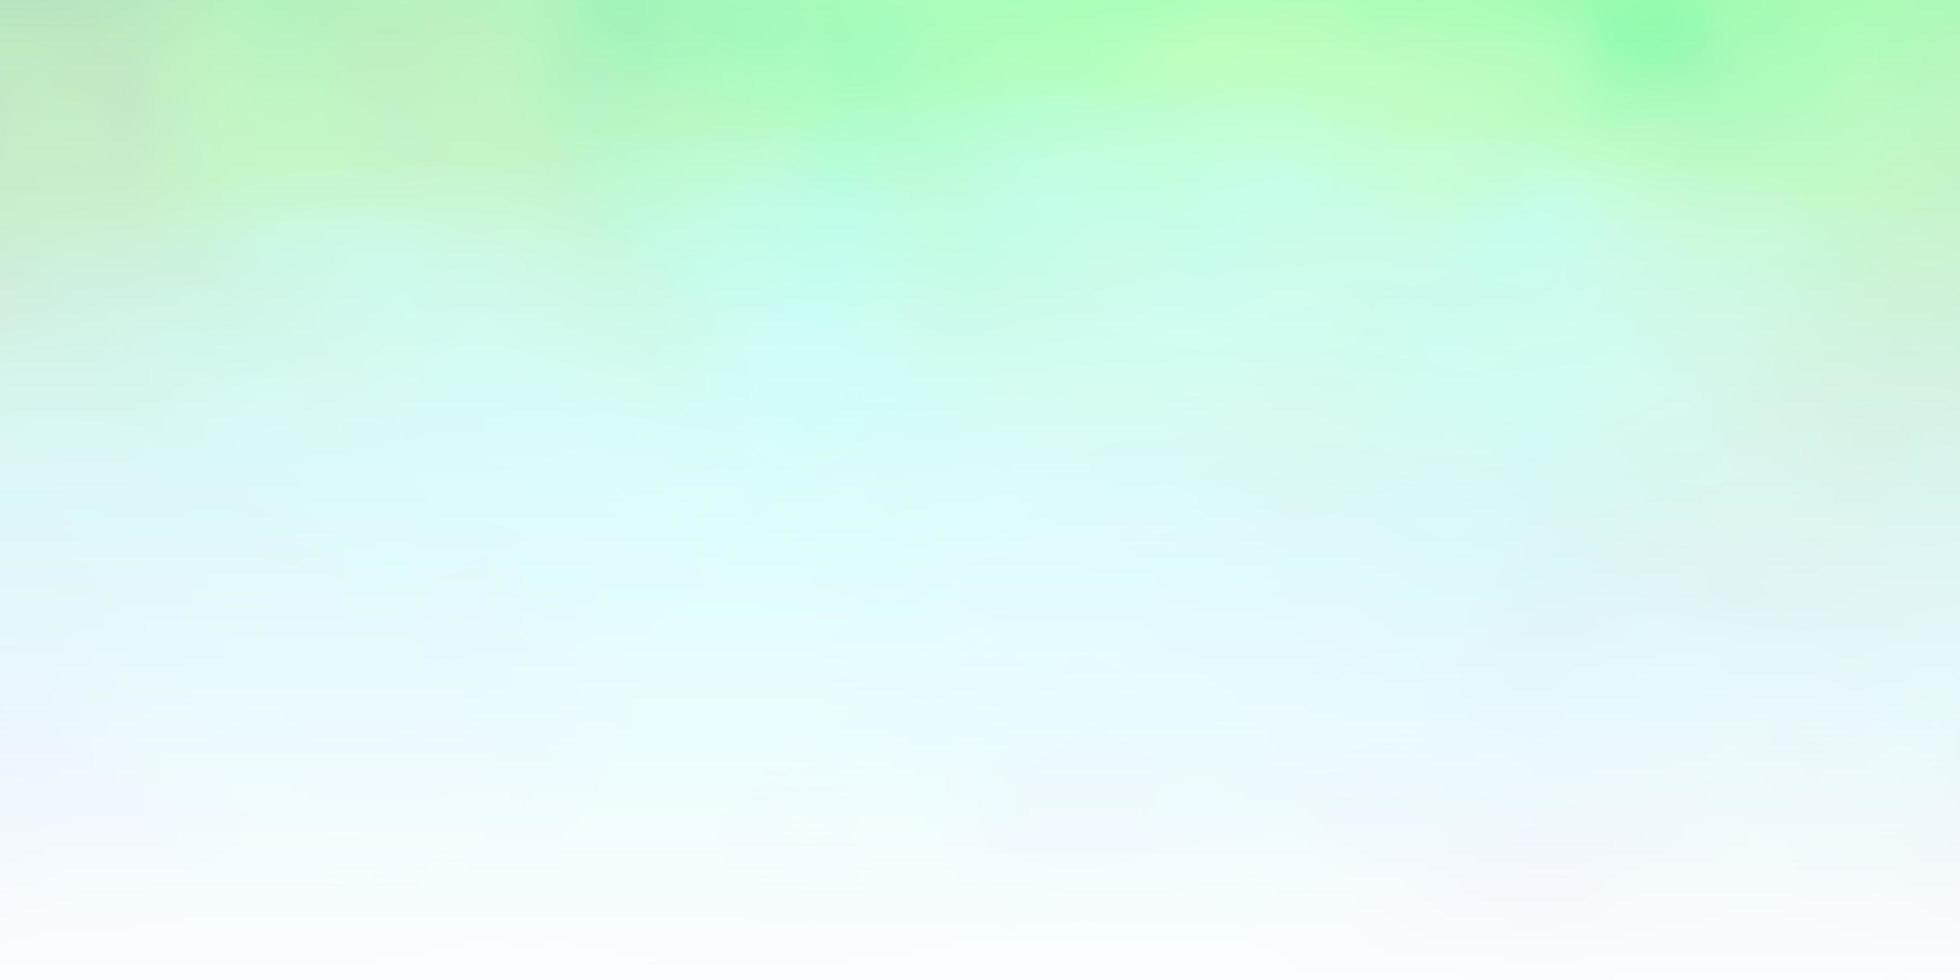 Light green template with sky, clouds. vector